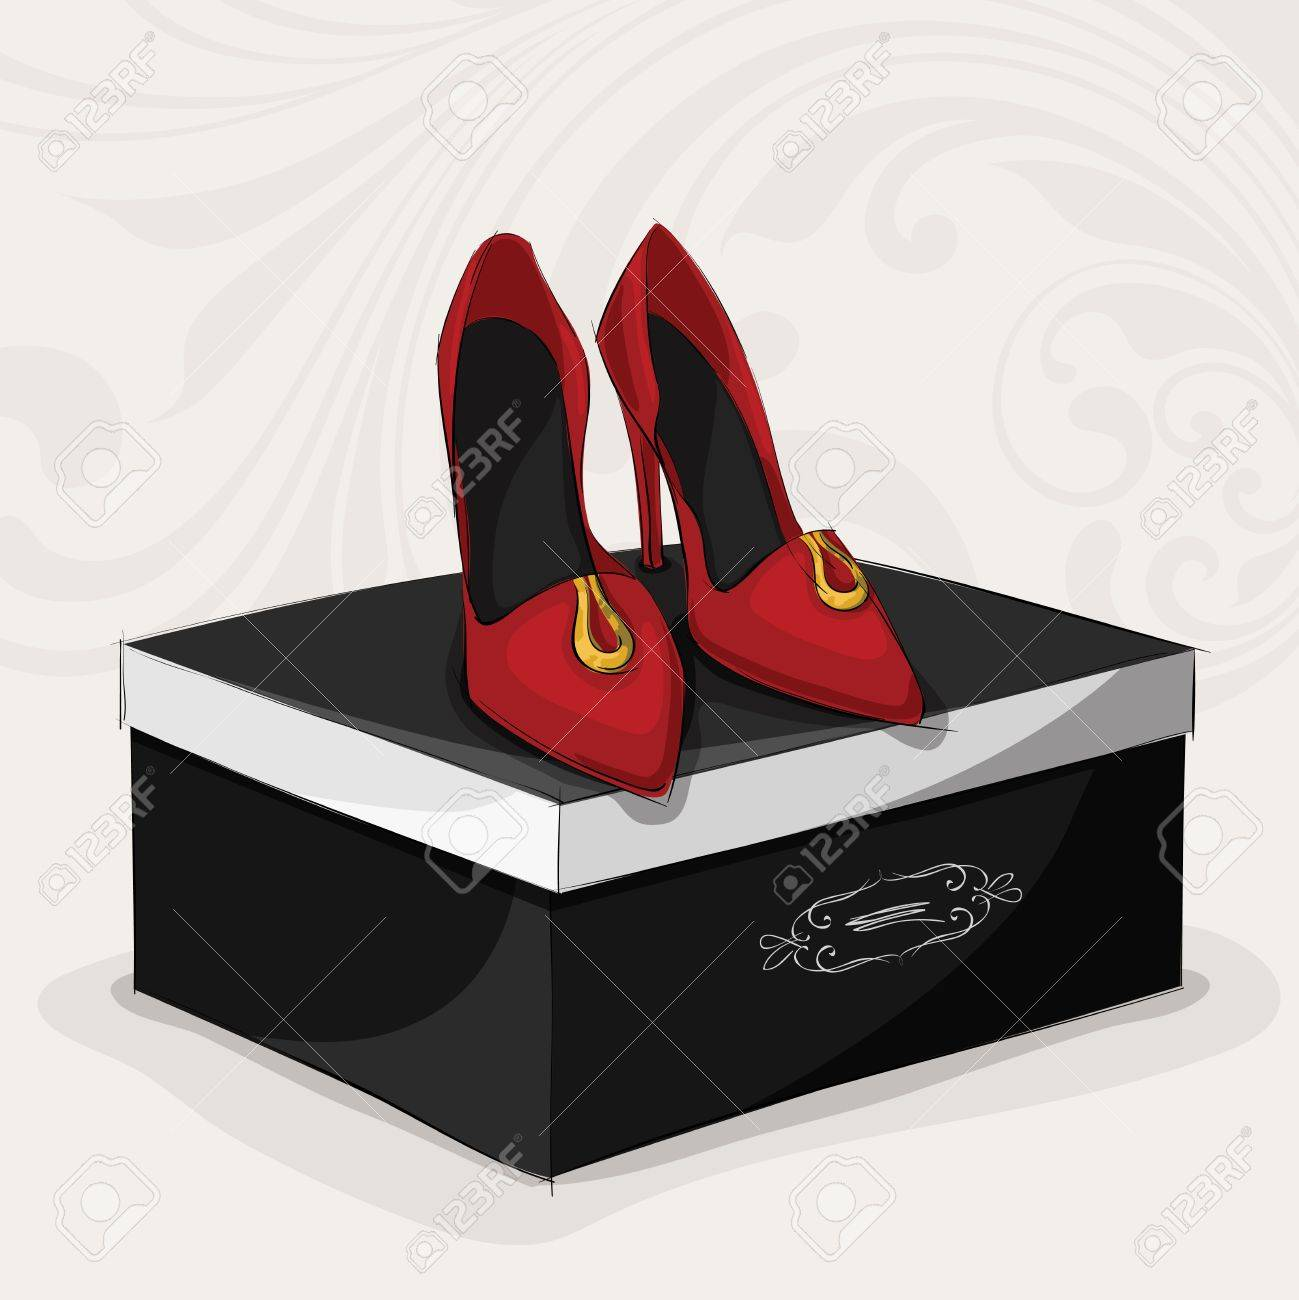 Fashion woman\u0027s red shoes on high heels on black luxury gift..